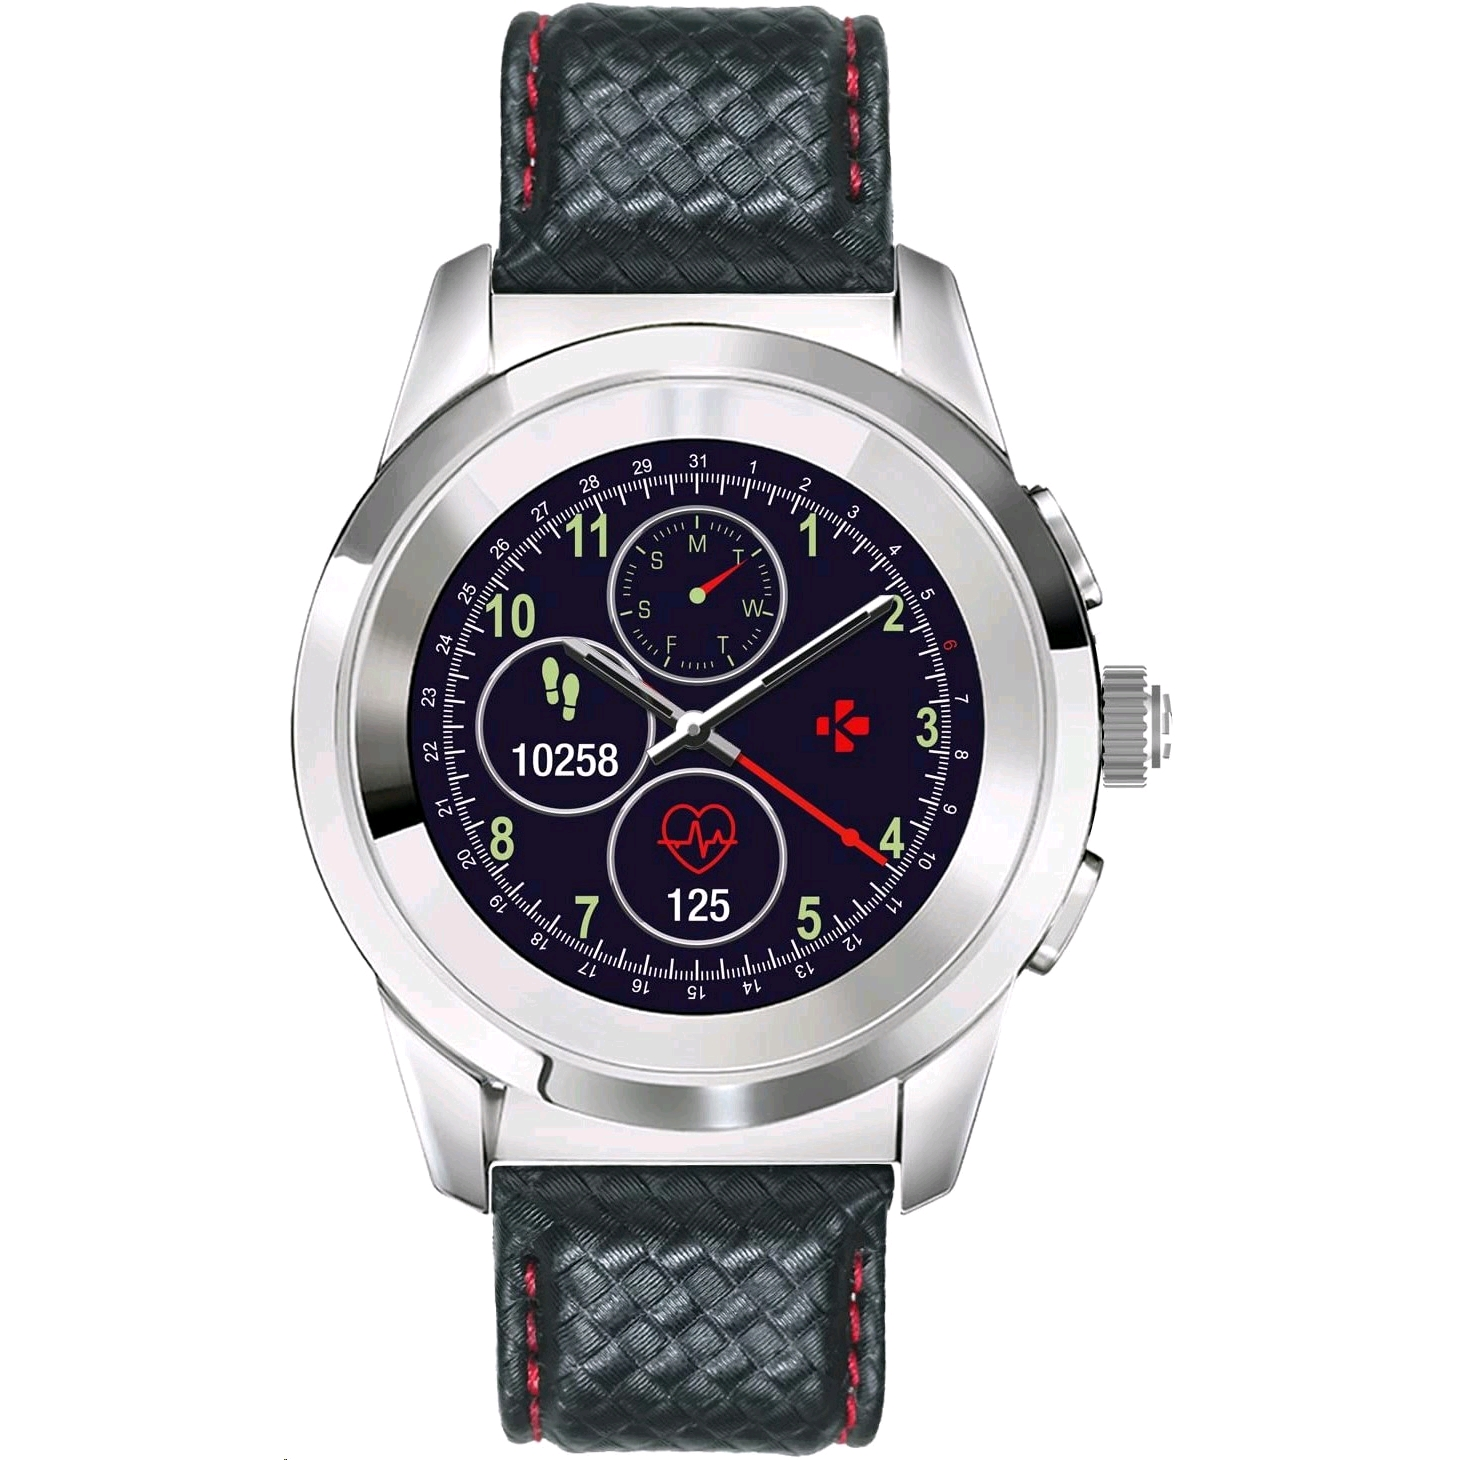 MyKronoz ZeTime Premium Regular Hybrid 機械指針型智慧手錶 (Polished Silver / Black Carbon Red Stitching) - EXPANSYS Taiwan